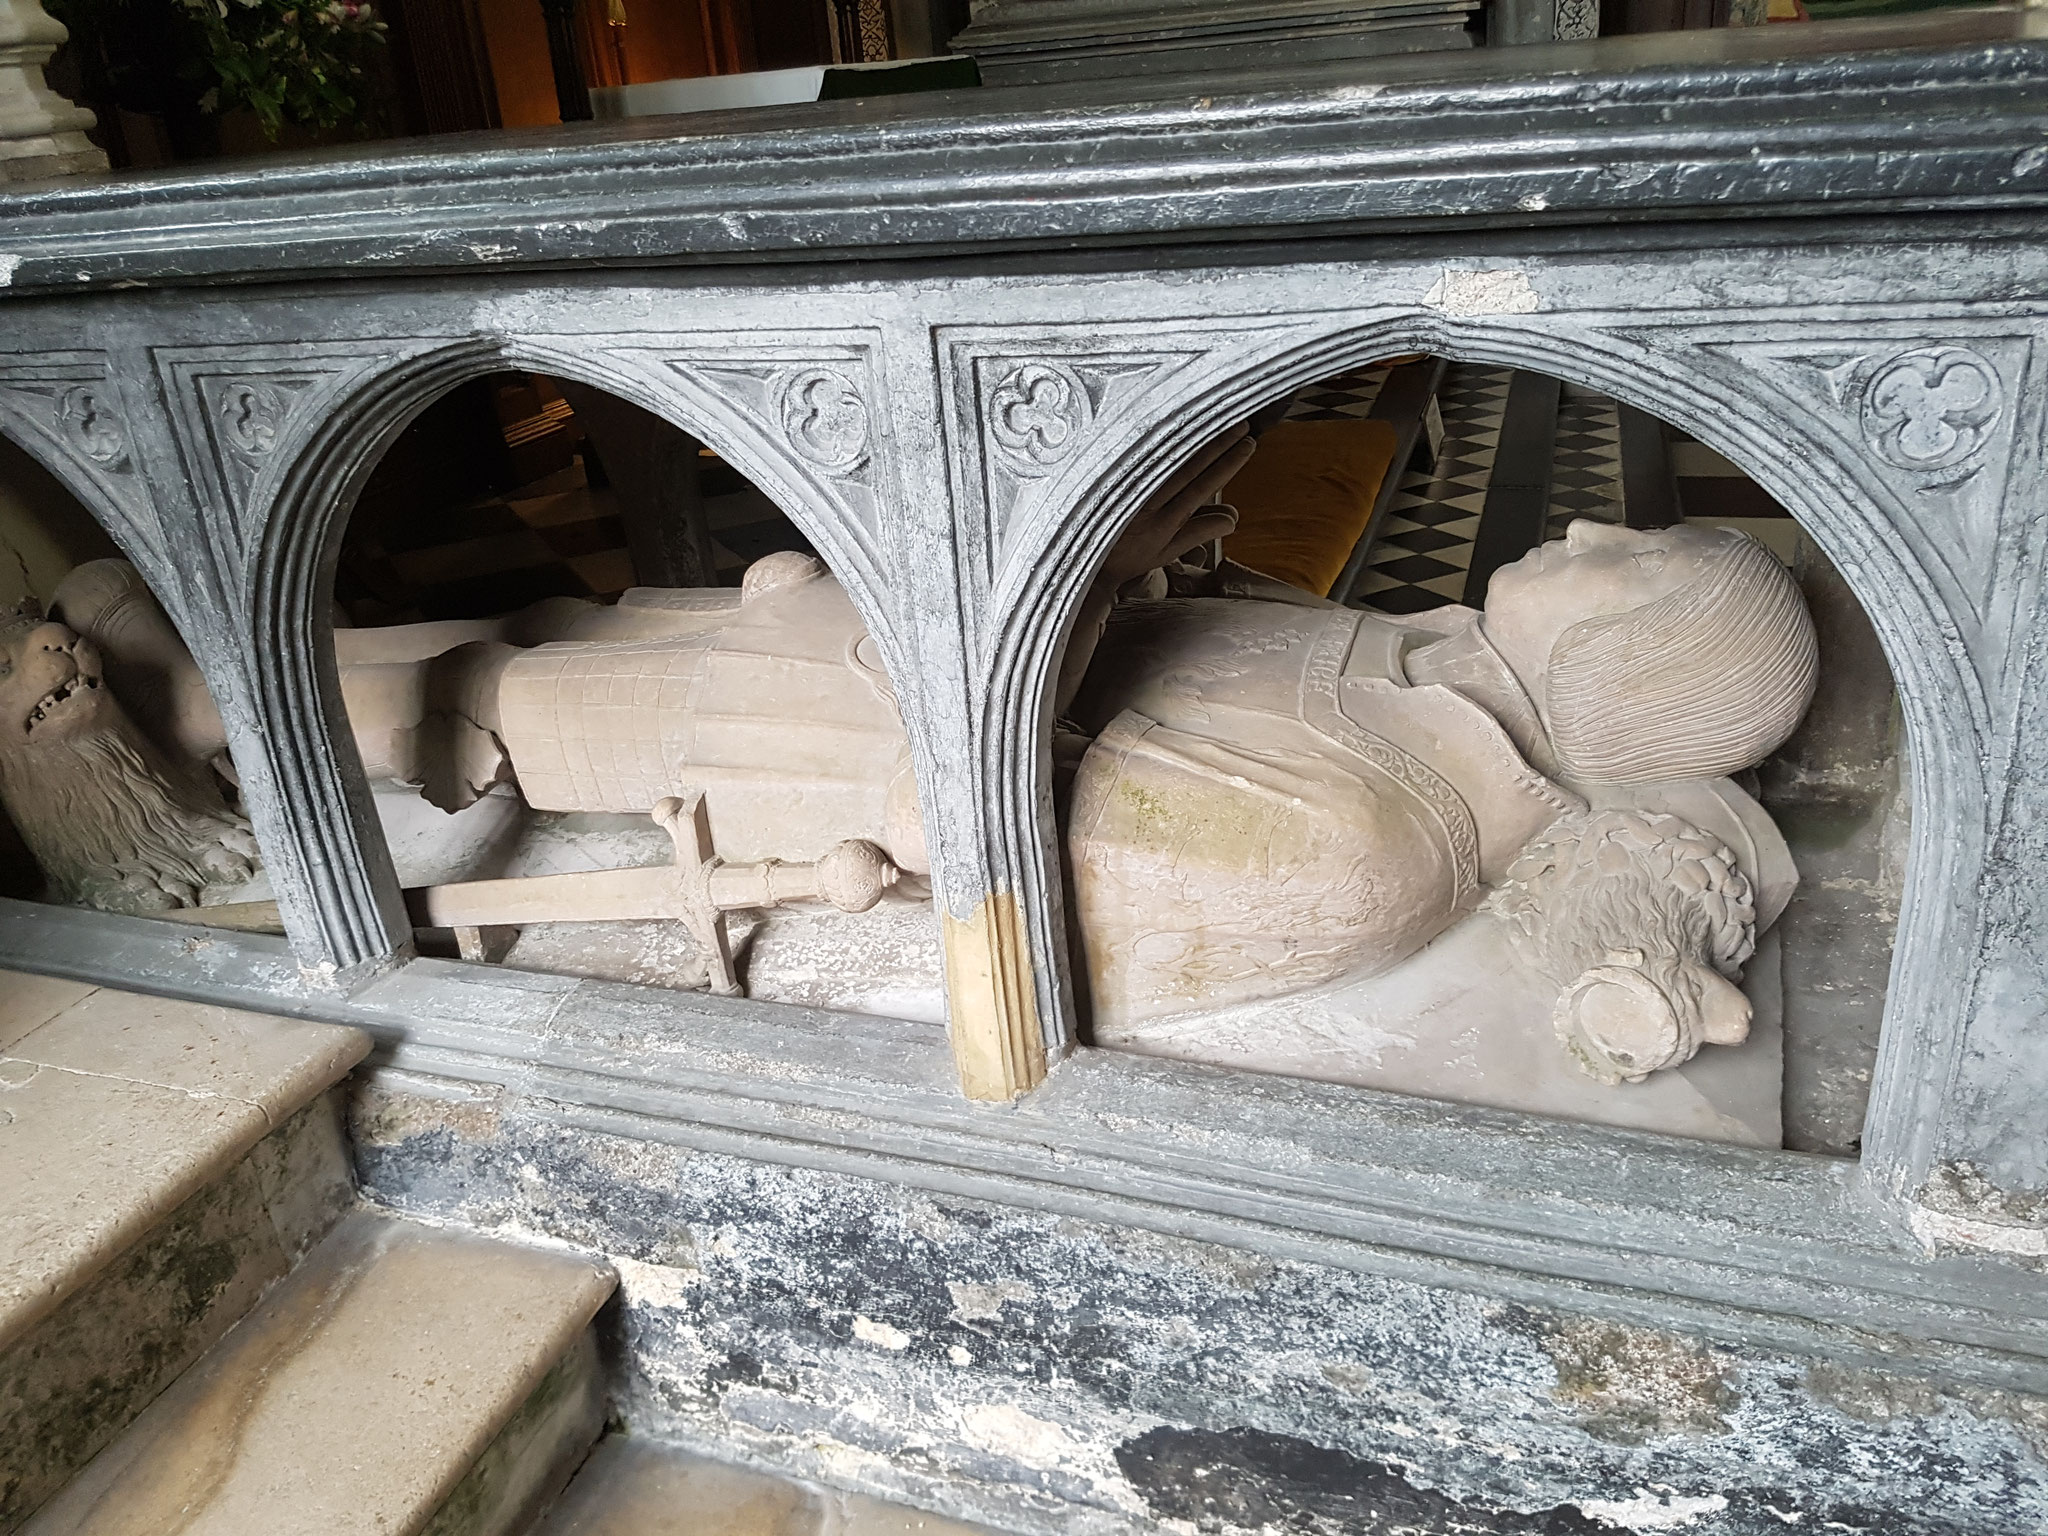 Tomb of Sir John Peche d 1522